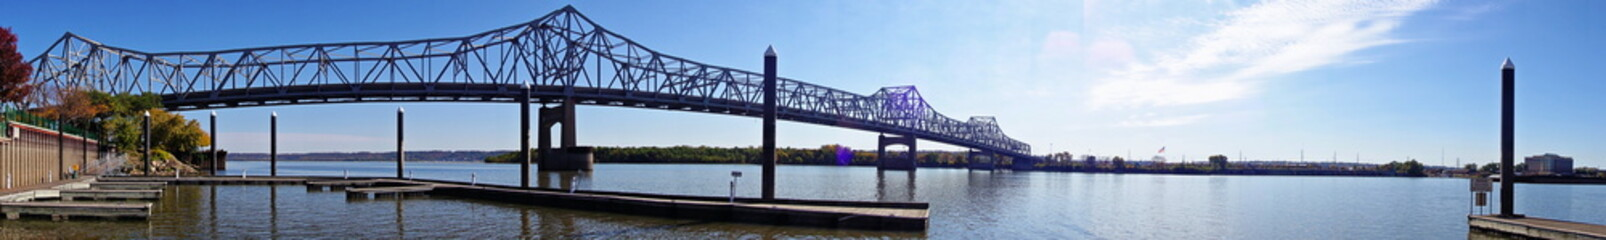 A bridge in Youngstown Ohio